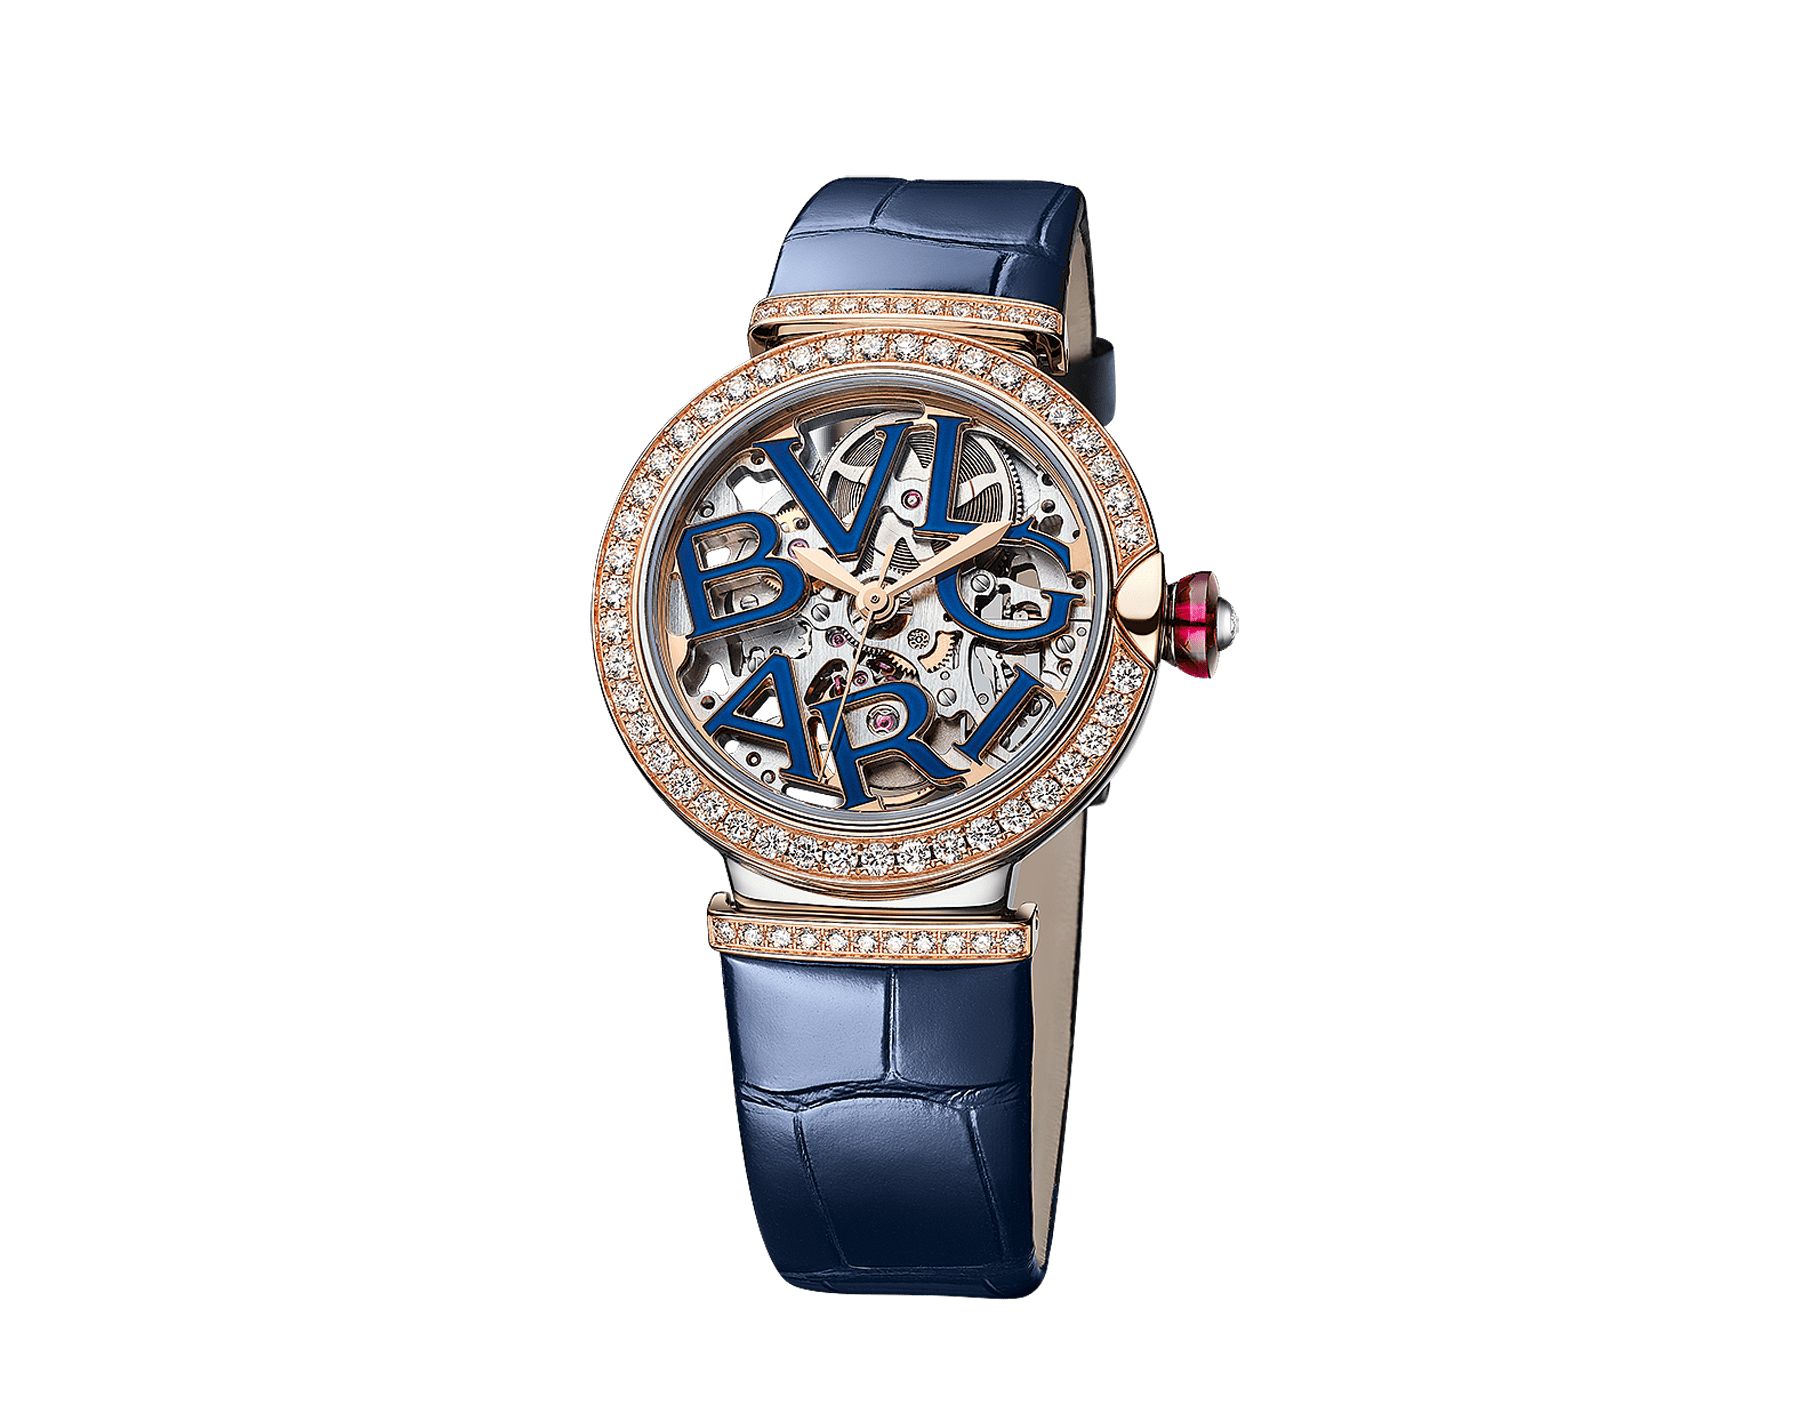 LVCEA Skeleton watch with mechanical manufacture movement, automatic winding and skeleton execution, polished stainless steel case, 18 kt rose gold bezel and links set with diamonds, blue lacquered openwork BVLGARI logo dial and blue alligator bracelet. Water-resistant up to 30 metres 103304 image 3